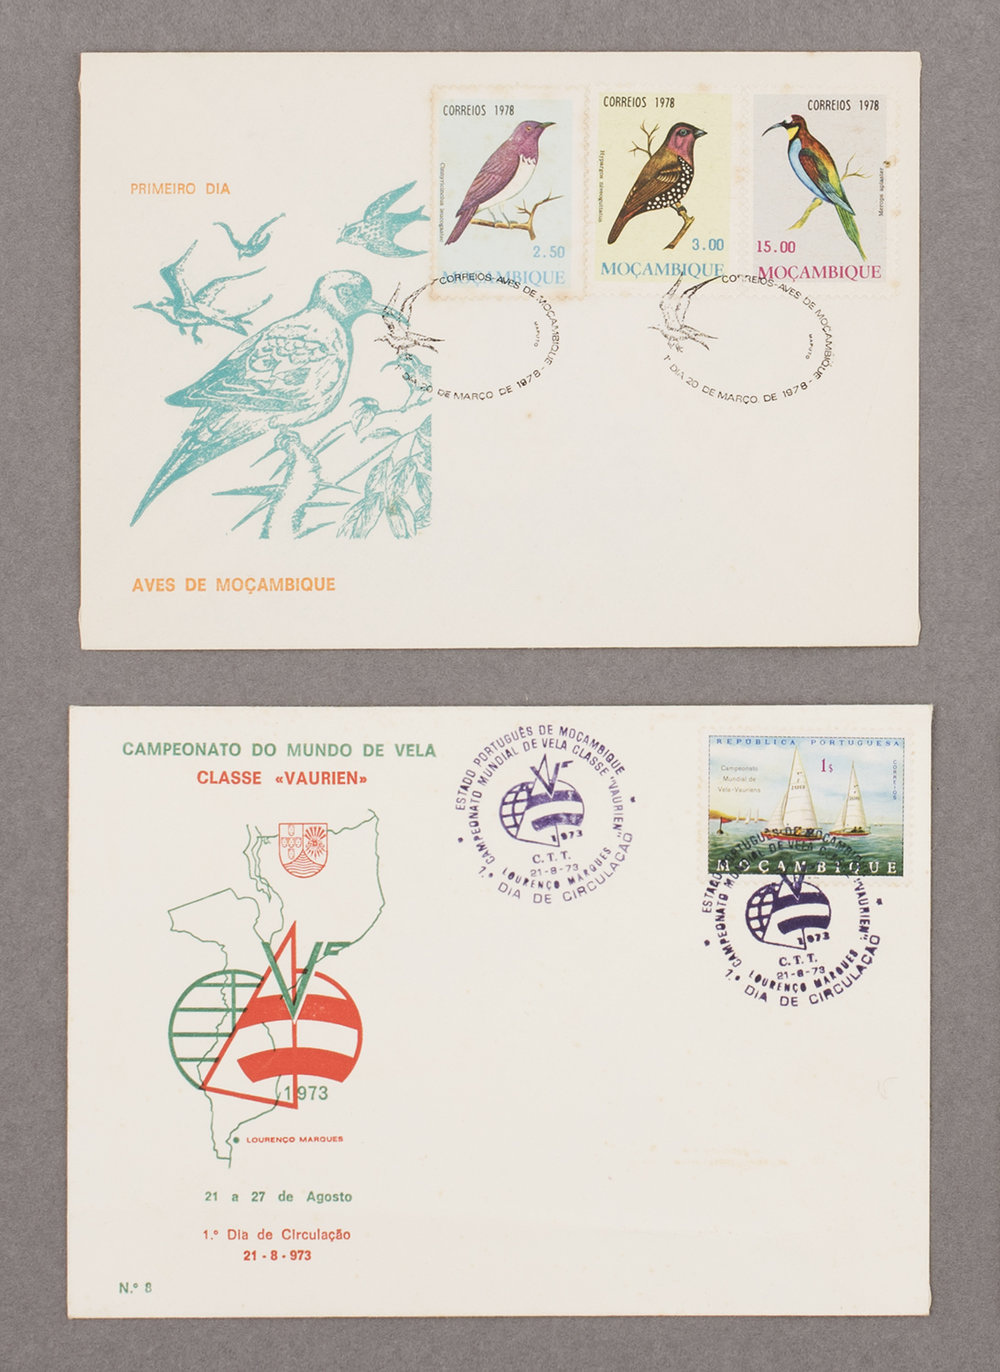 First day covers from Mozambique, 1978 & 1973, from Feira de Ladra, Lisbon